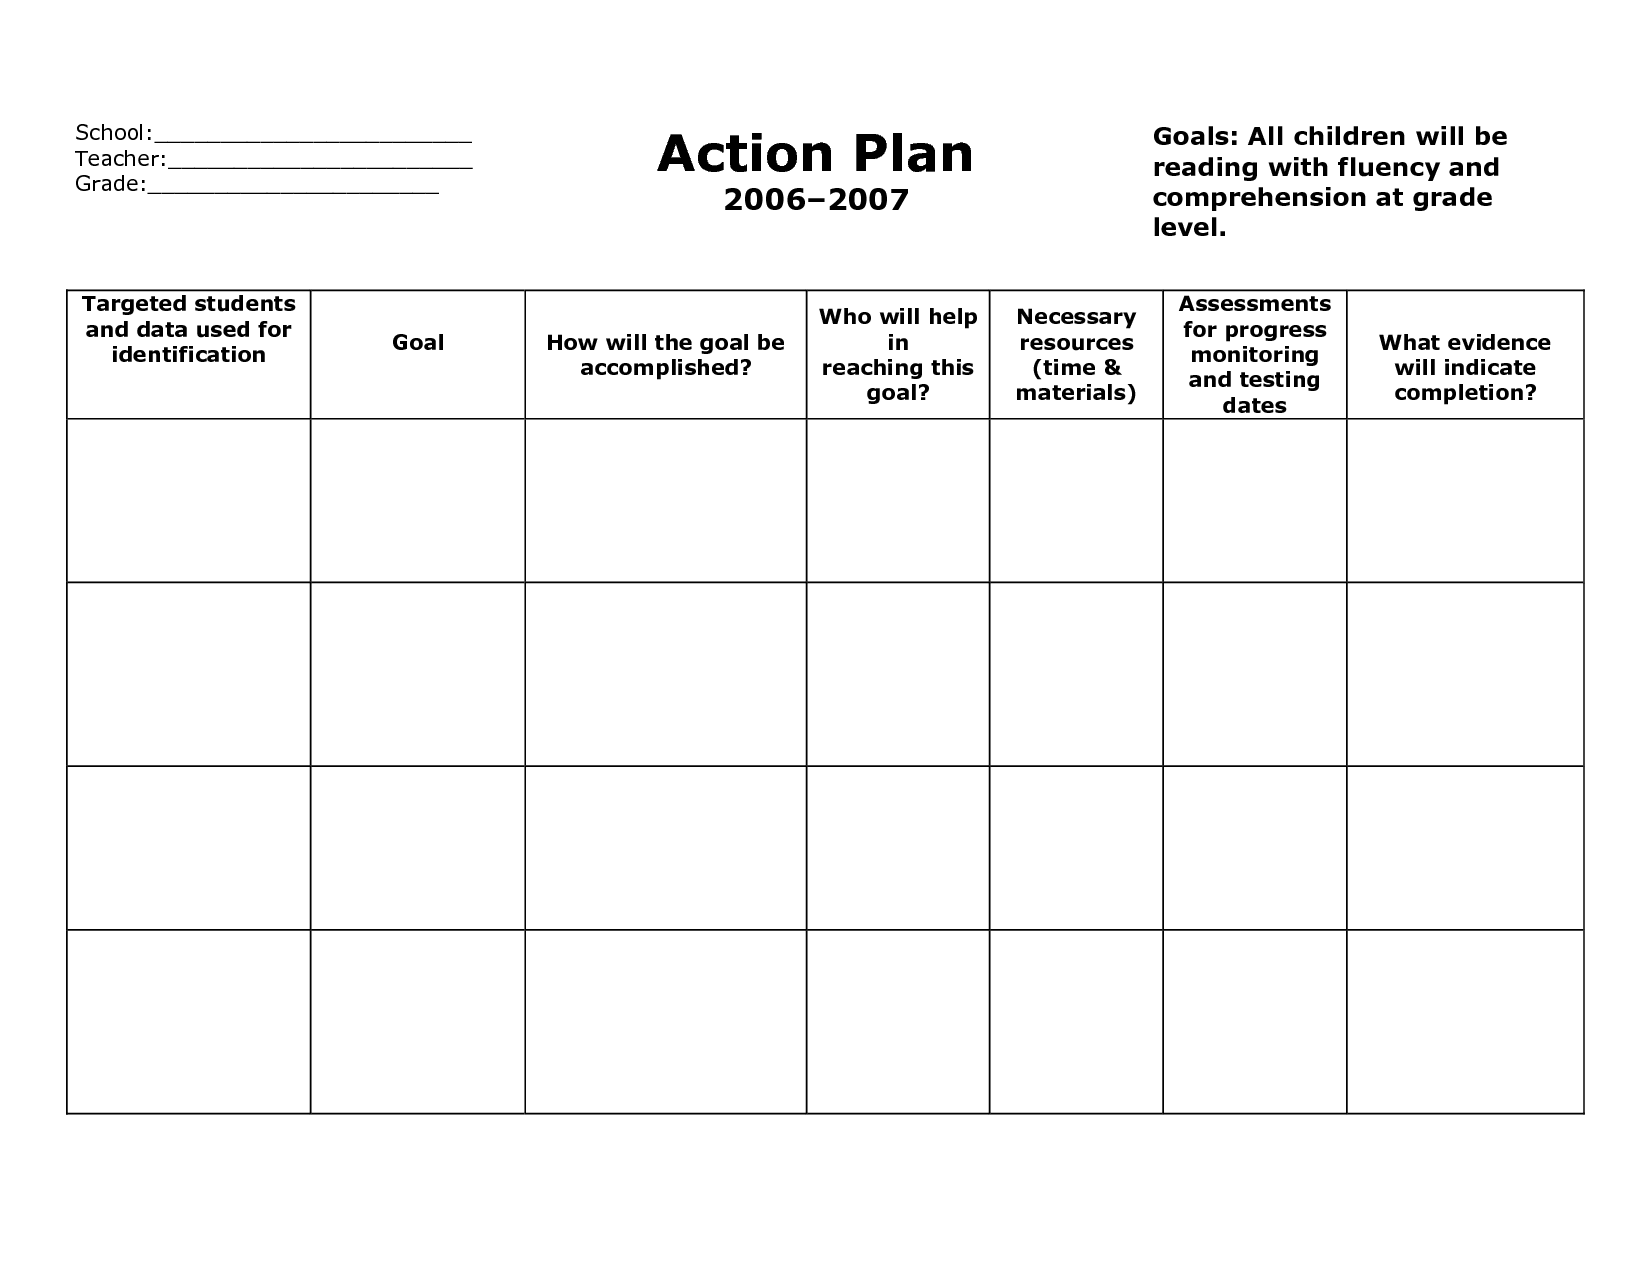 Action Plan Template planning action and accountability for – Daily Action Plan Template